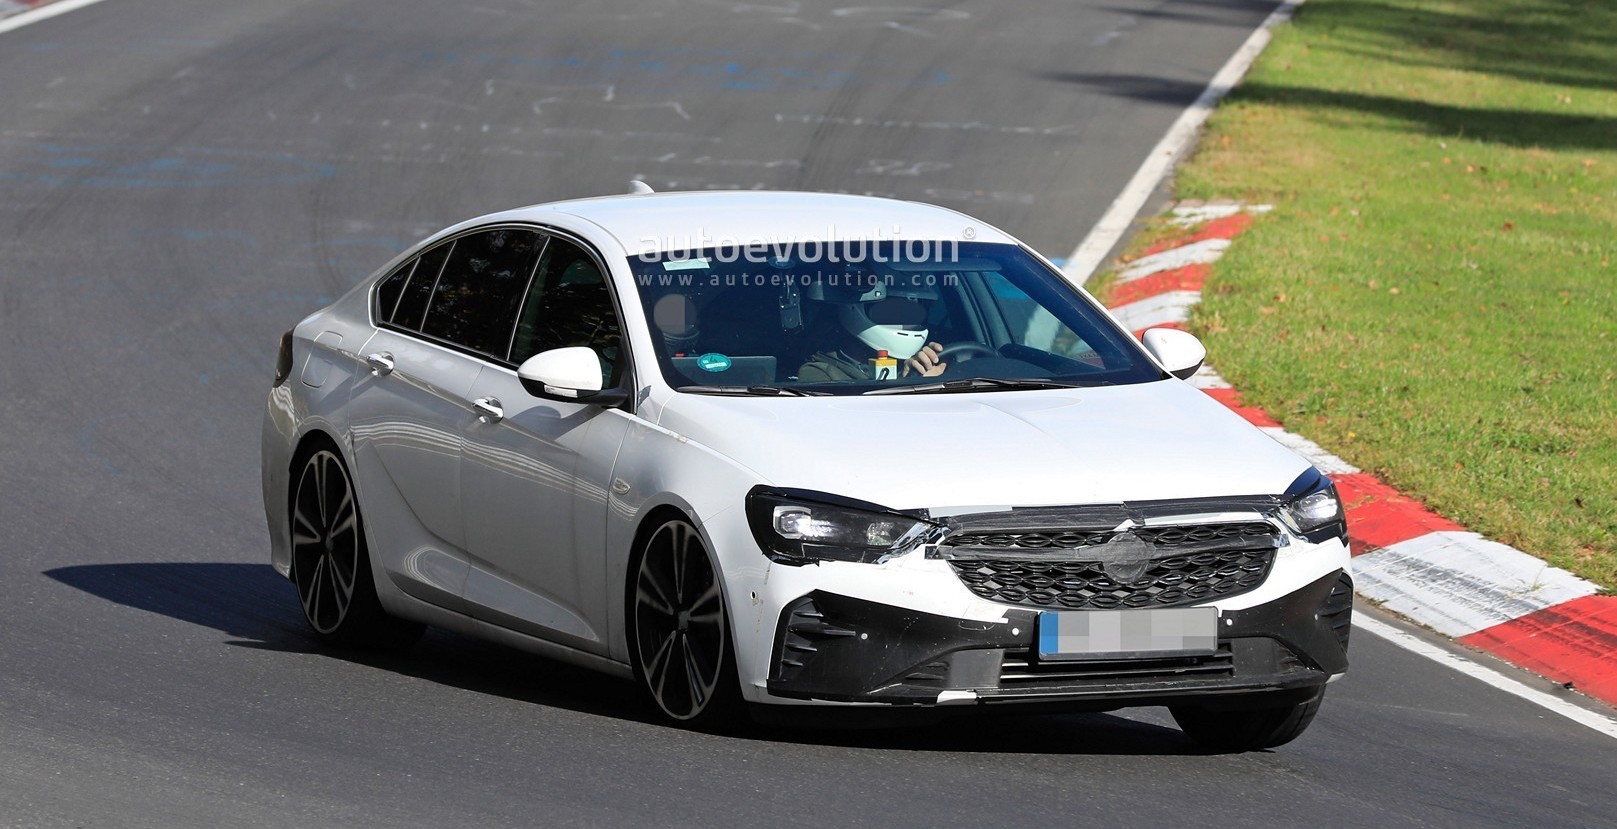 2020 Opel Insignia Spied at the Nurburgring, Looks a Bit Sportier Ahead of Debut